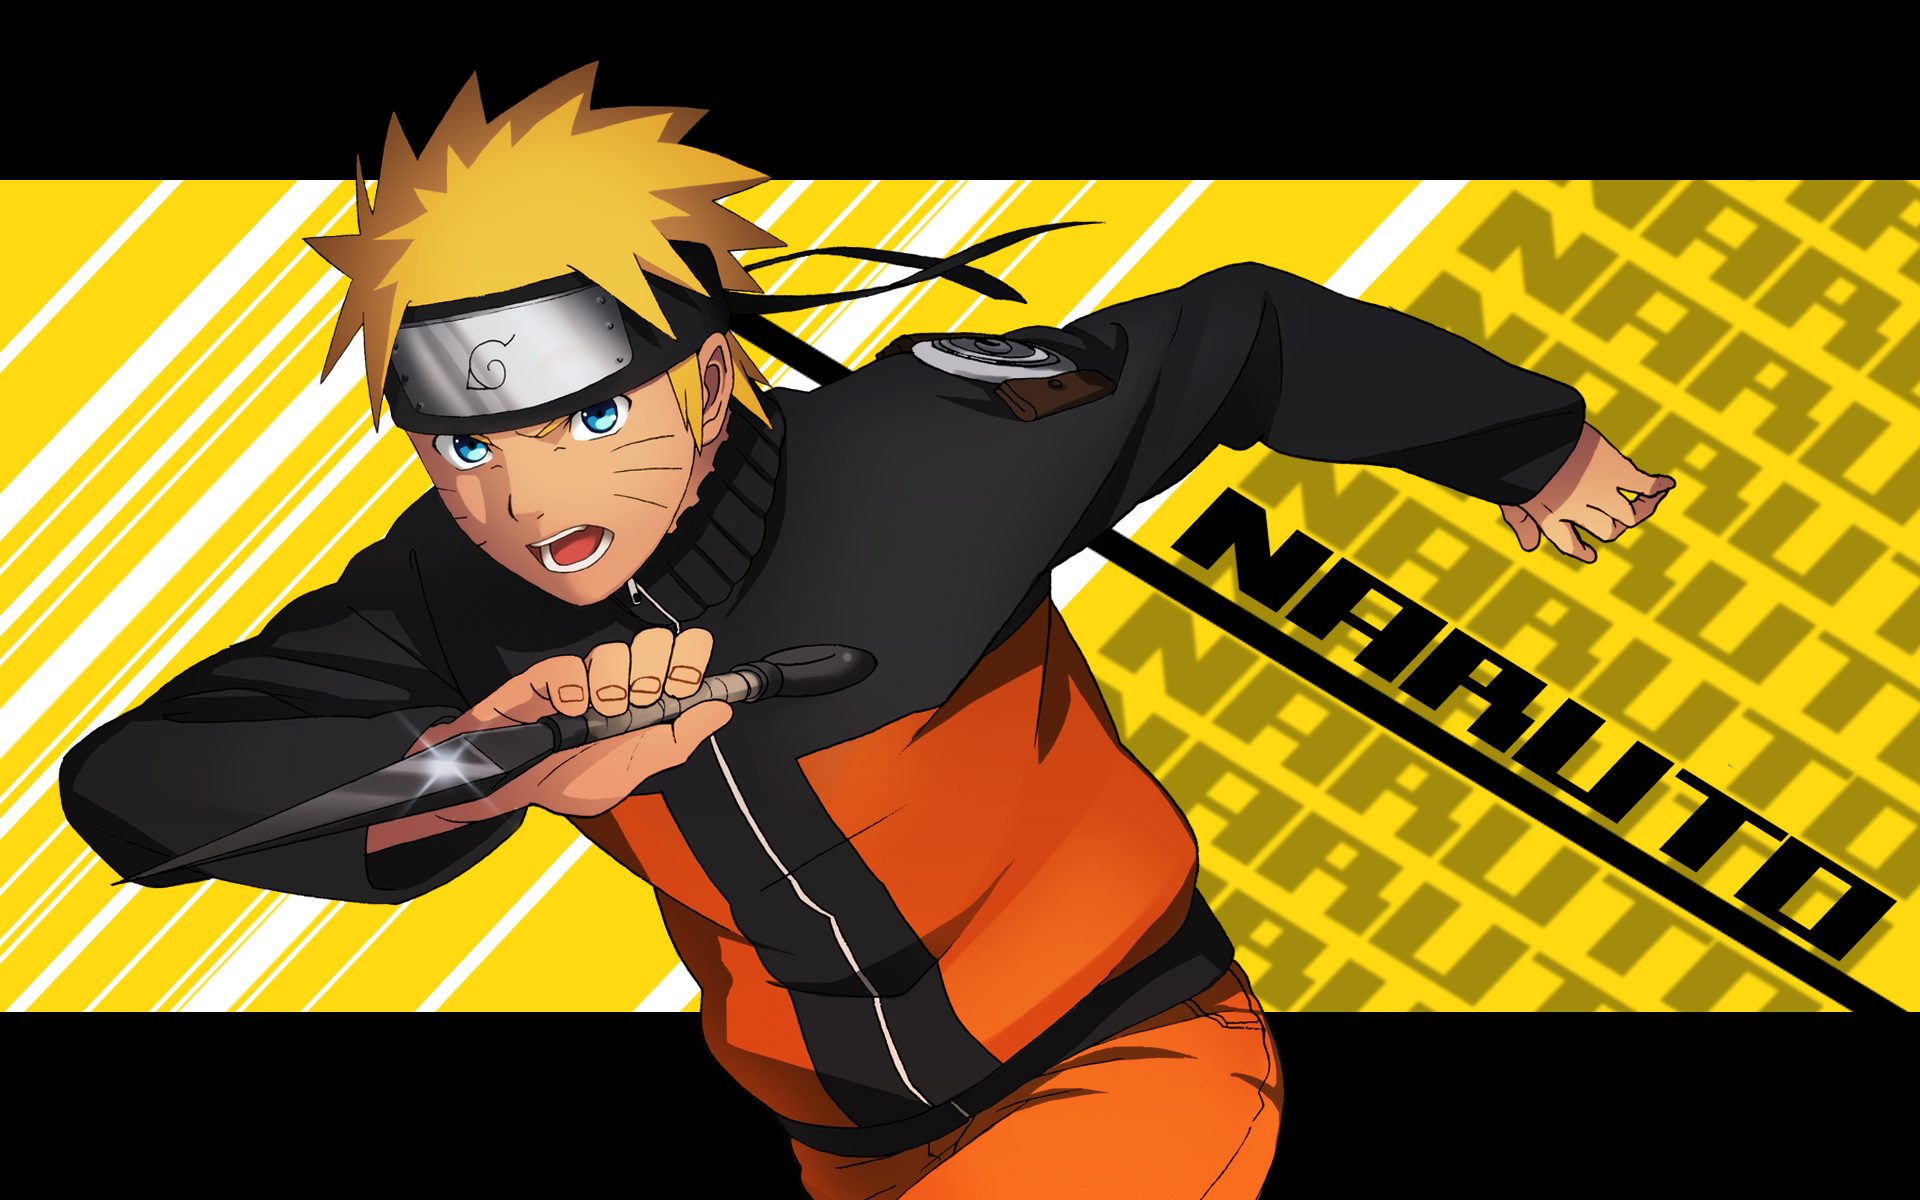 naruto full hd wallpaper and background image | 1920x1200 | id:769840